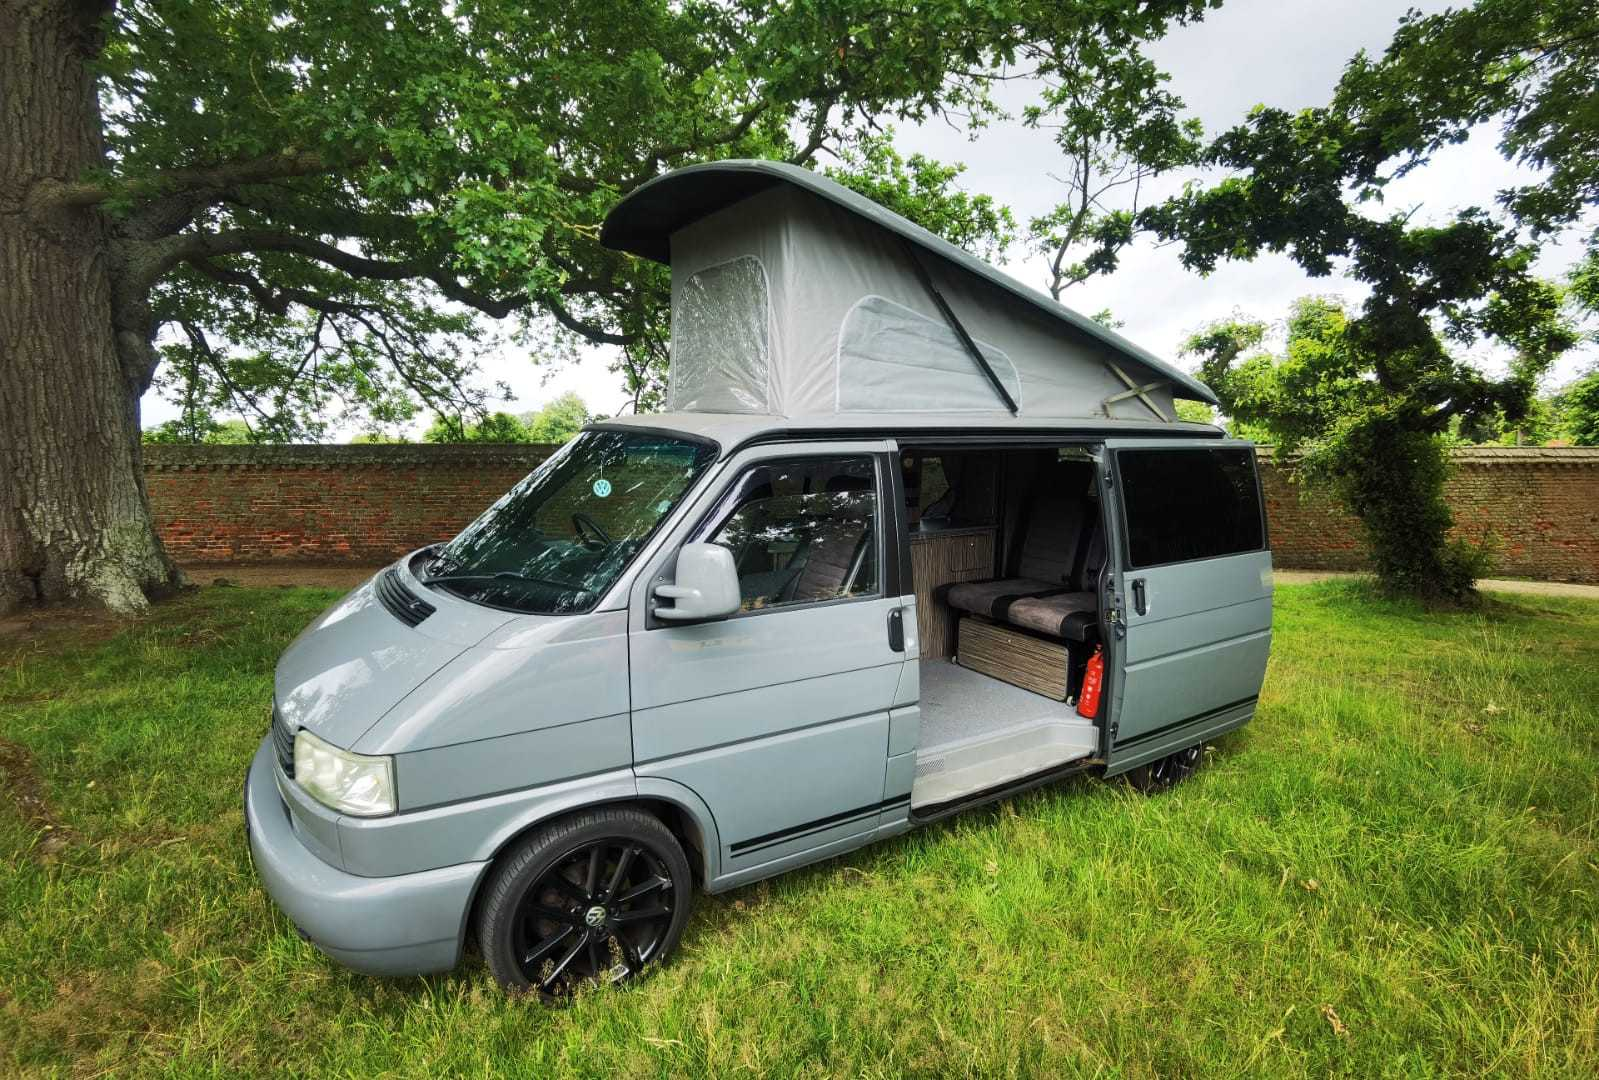 A VW T4 Campervan called Kiki and for hire in norwich, Norfolk